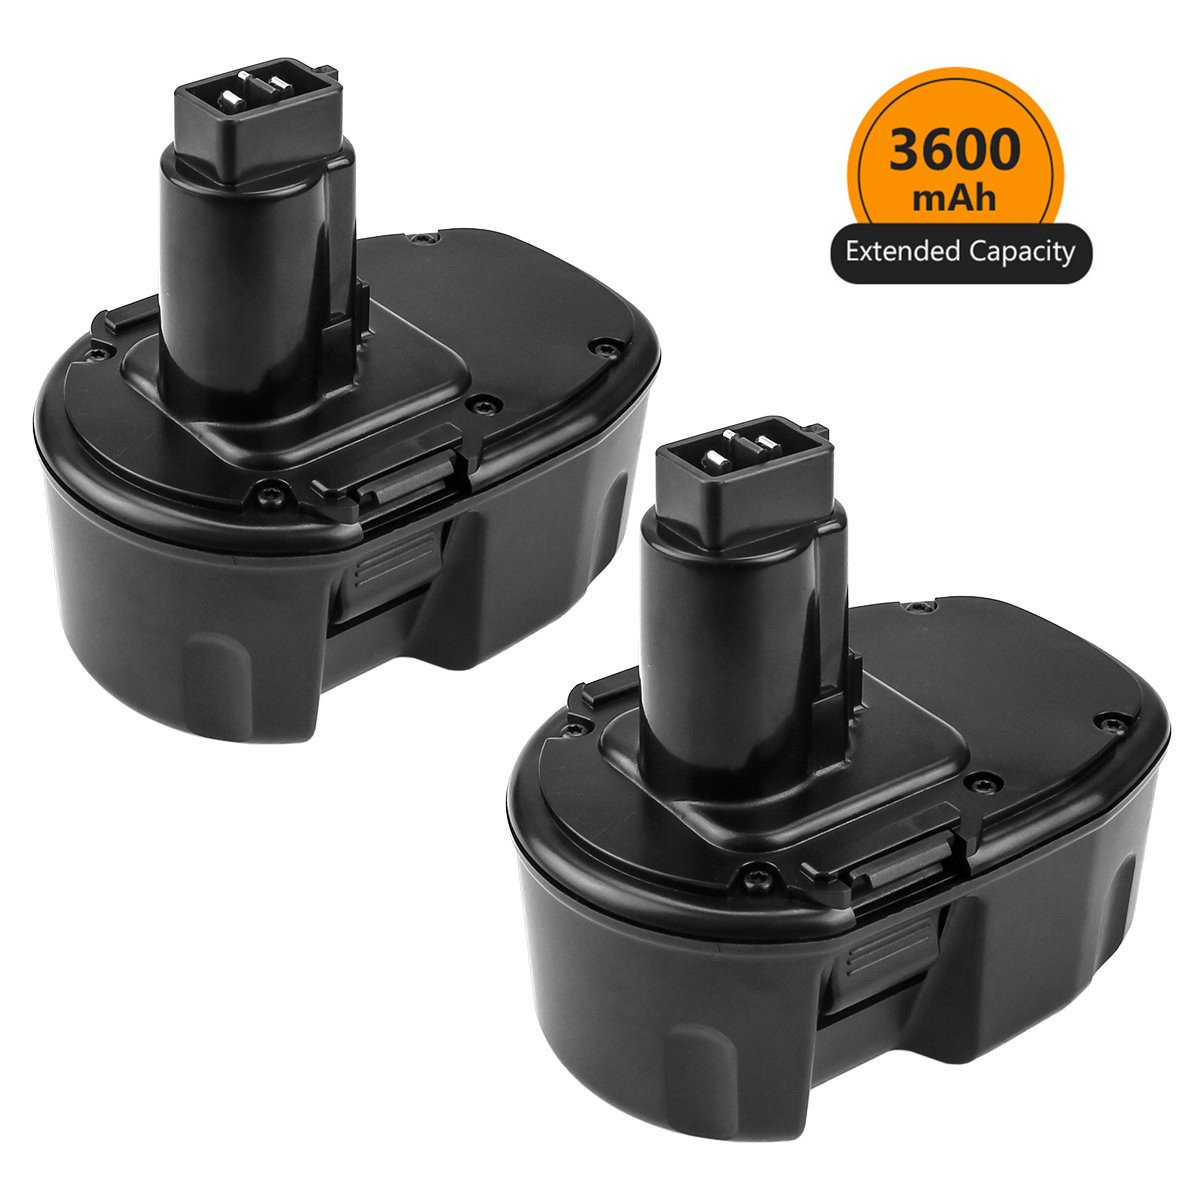 [Upgraded to 3600mAh] 3.6Ah Ni-Mh Replace for Dewalt 14.4V Battery XRP DC9091 DW9091 DW9094 DE9091 Cordless Power Tool 2 Pack